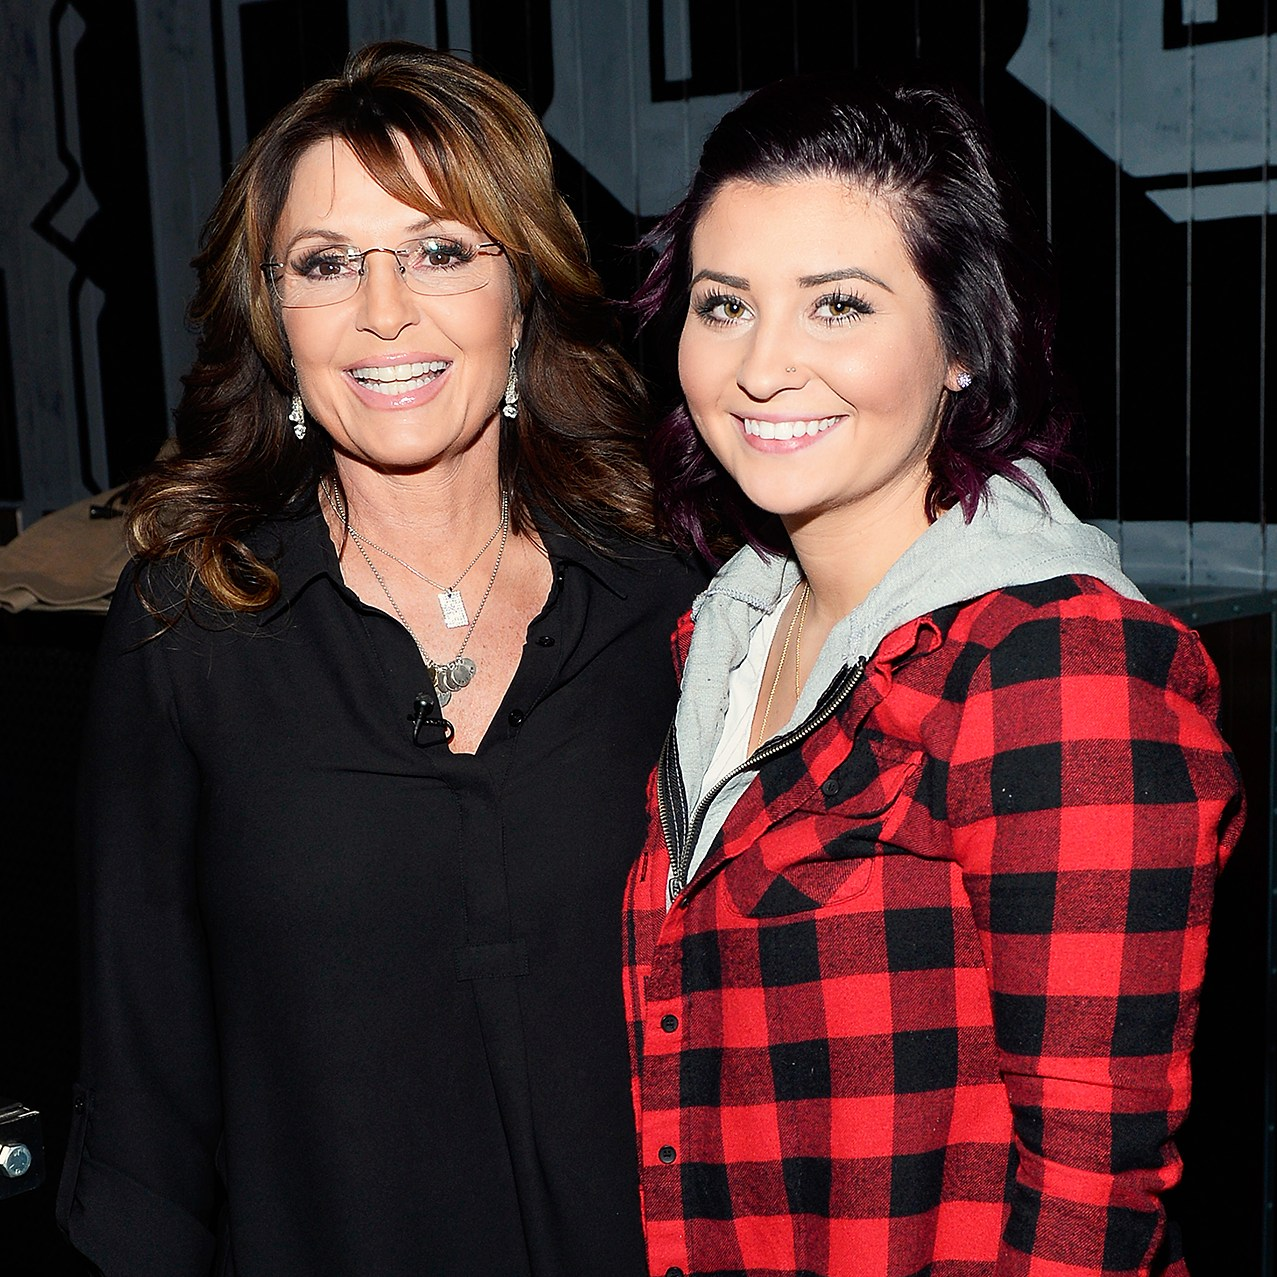 Sarah Palin and Willow Palin